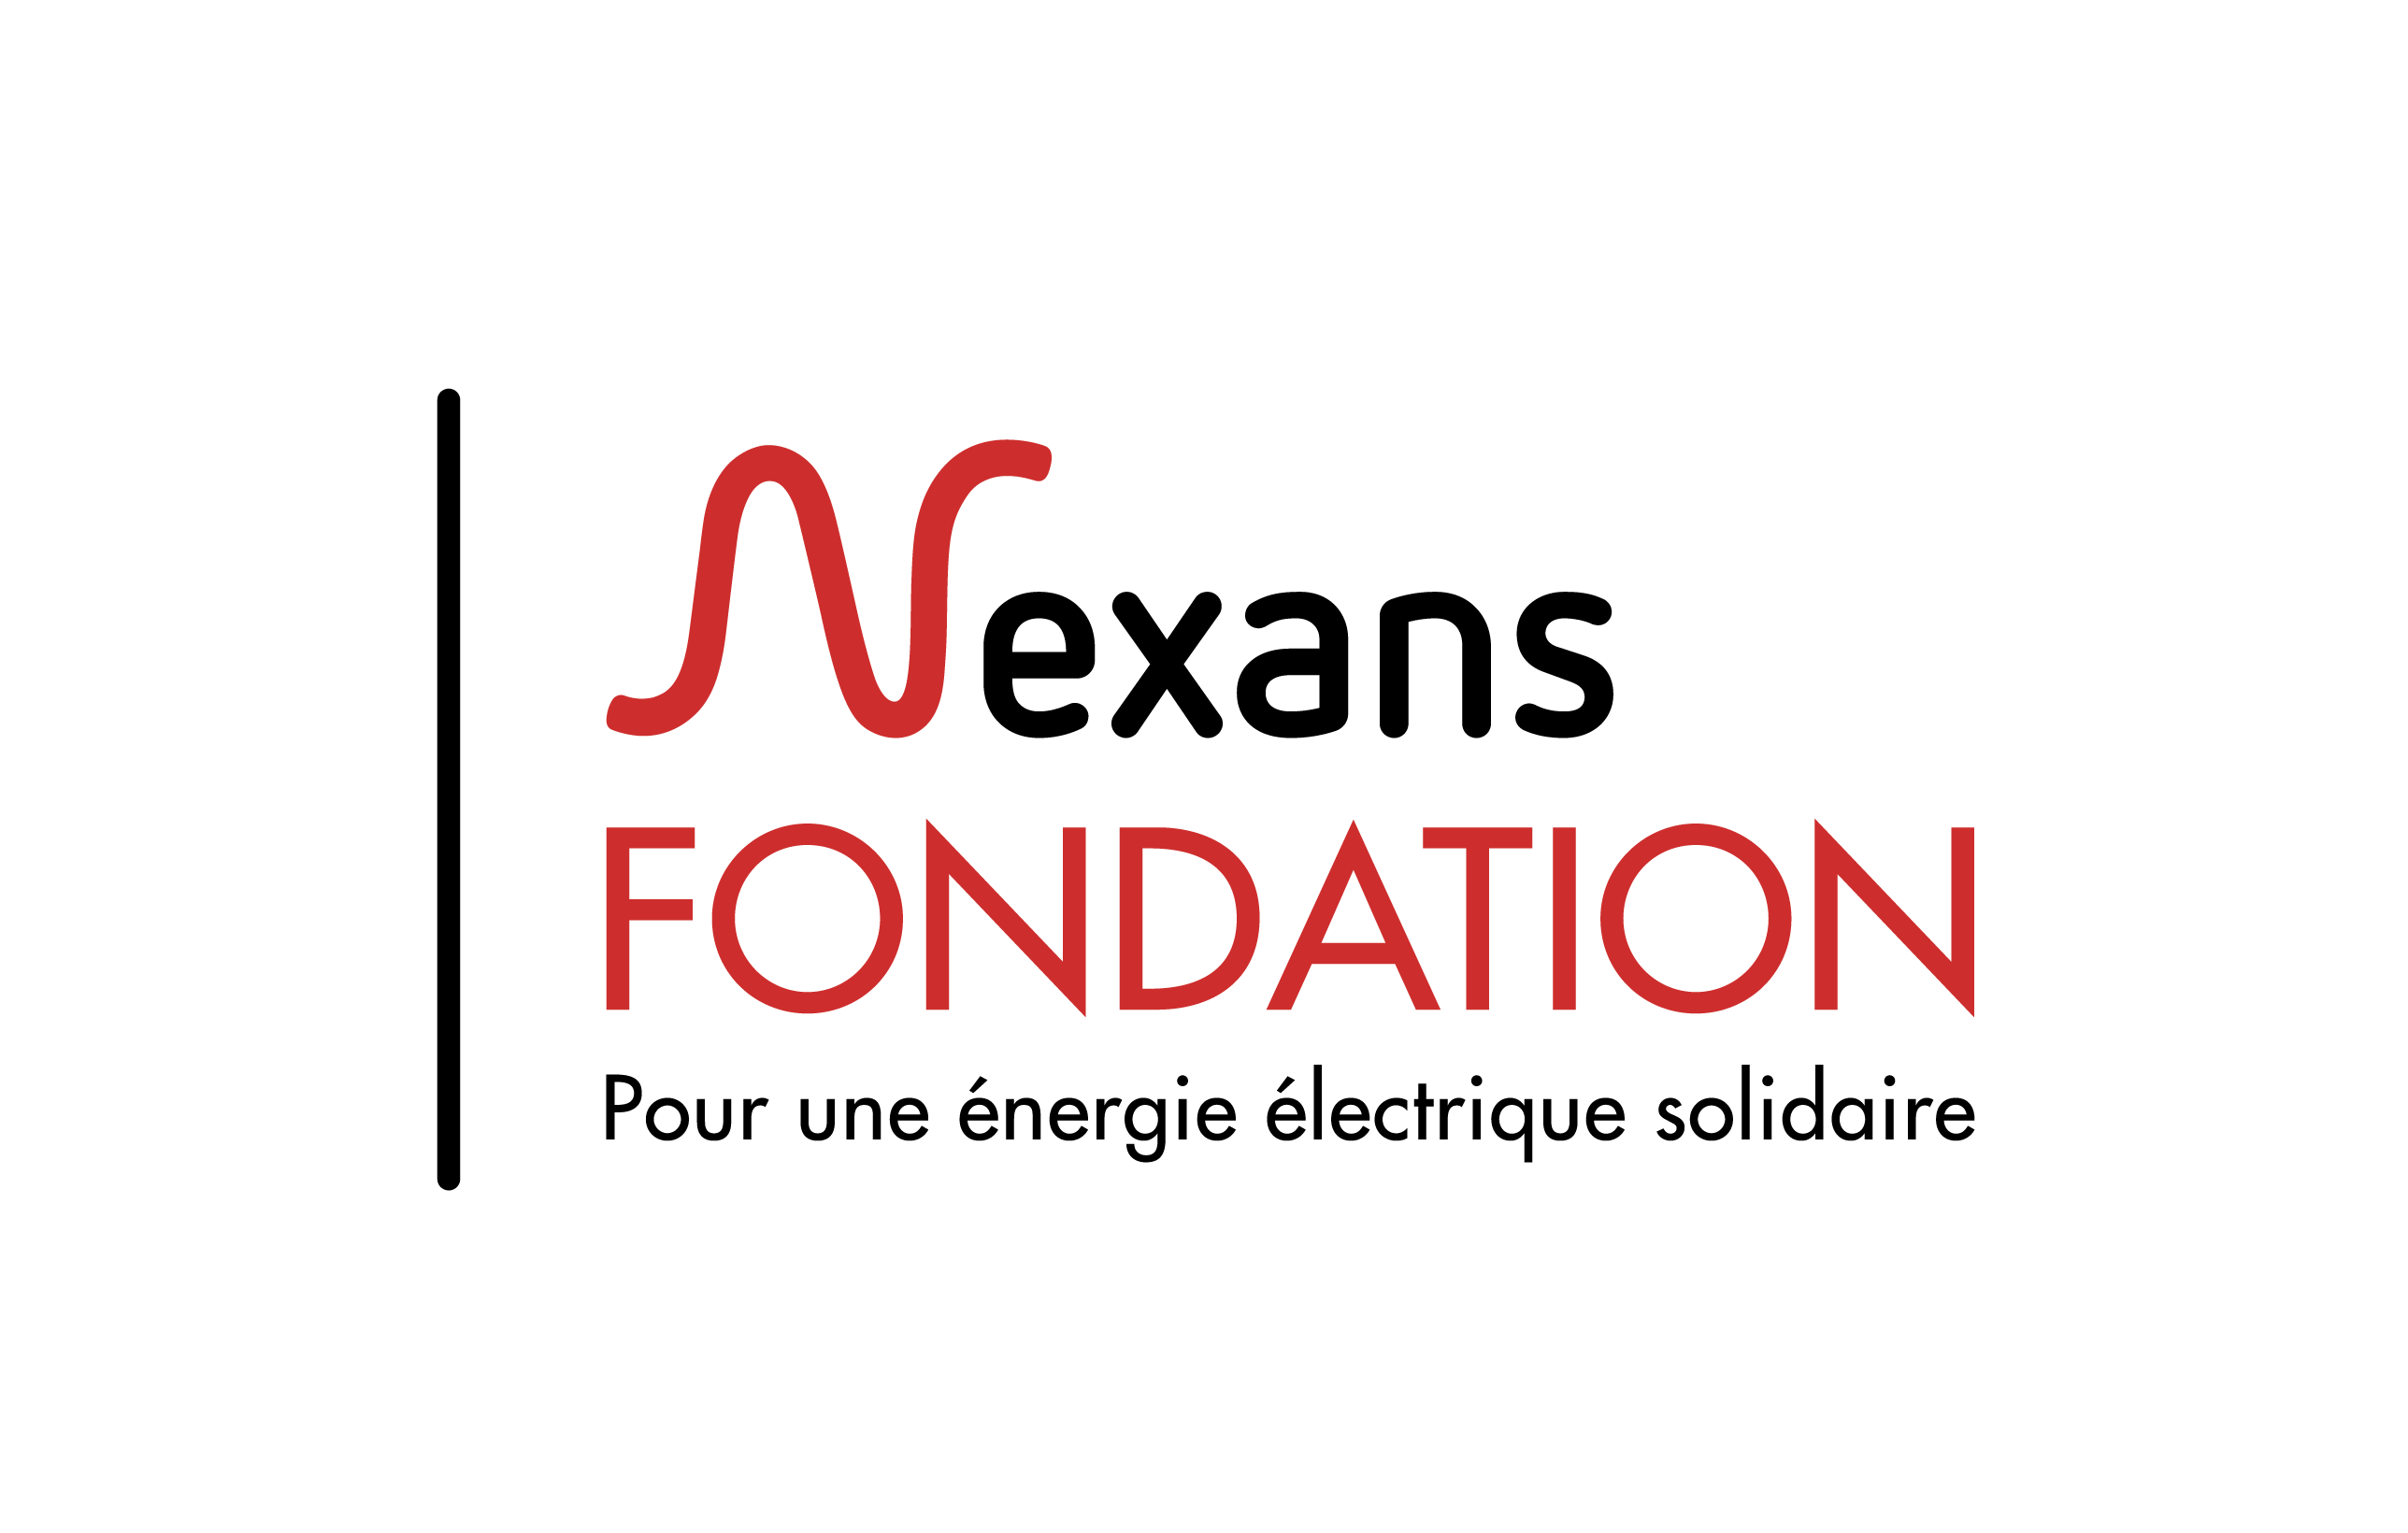 Fondation Nexans